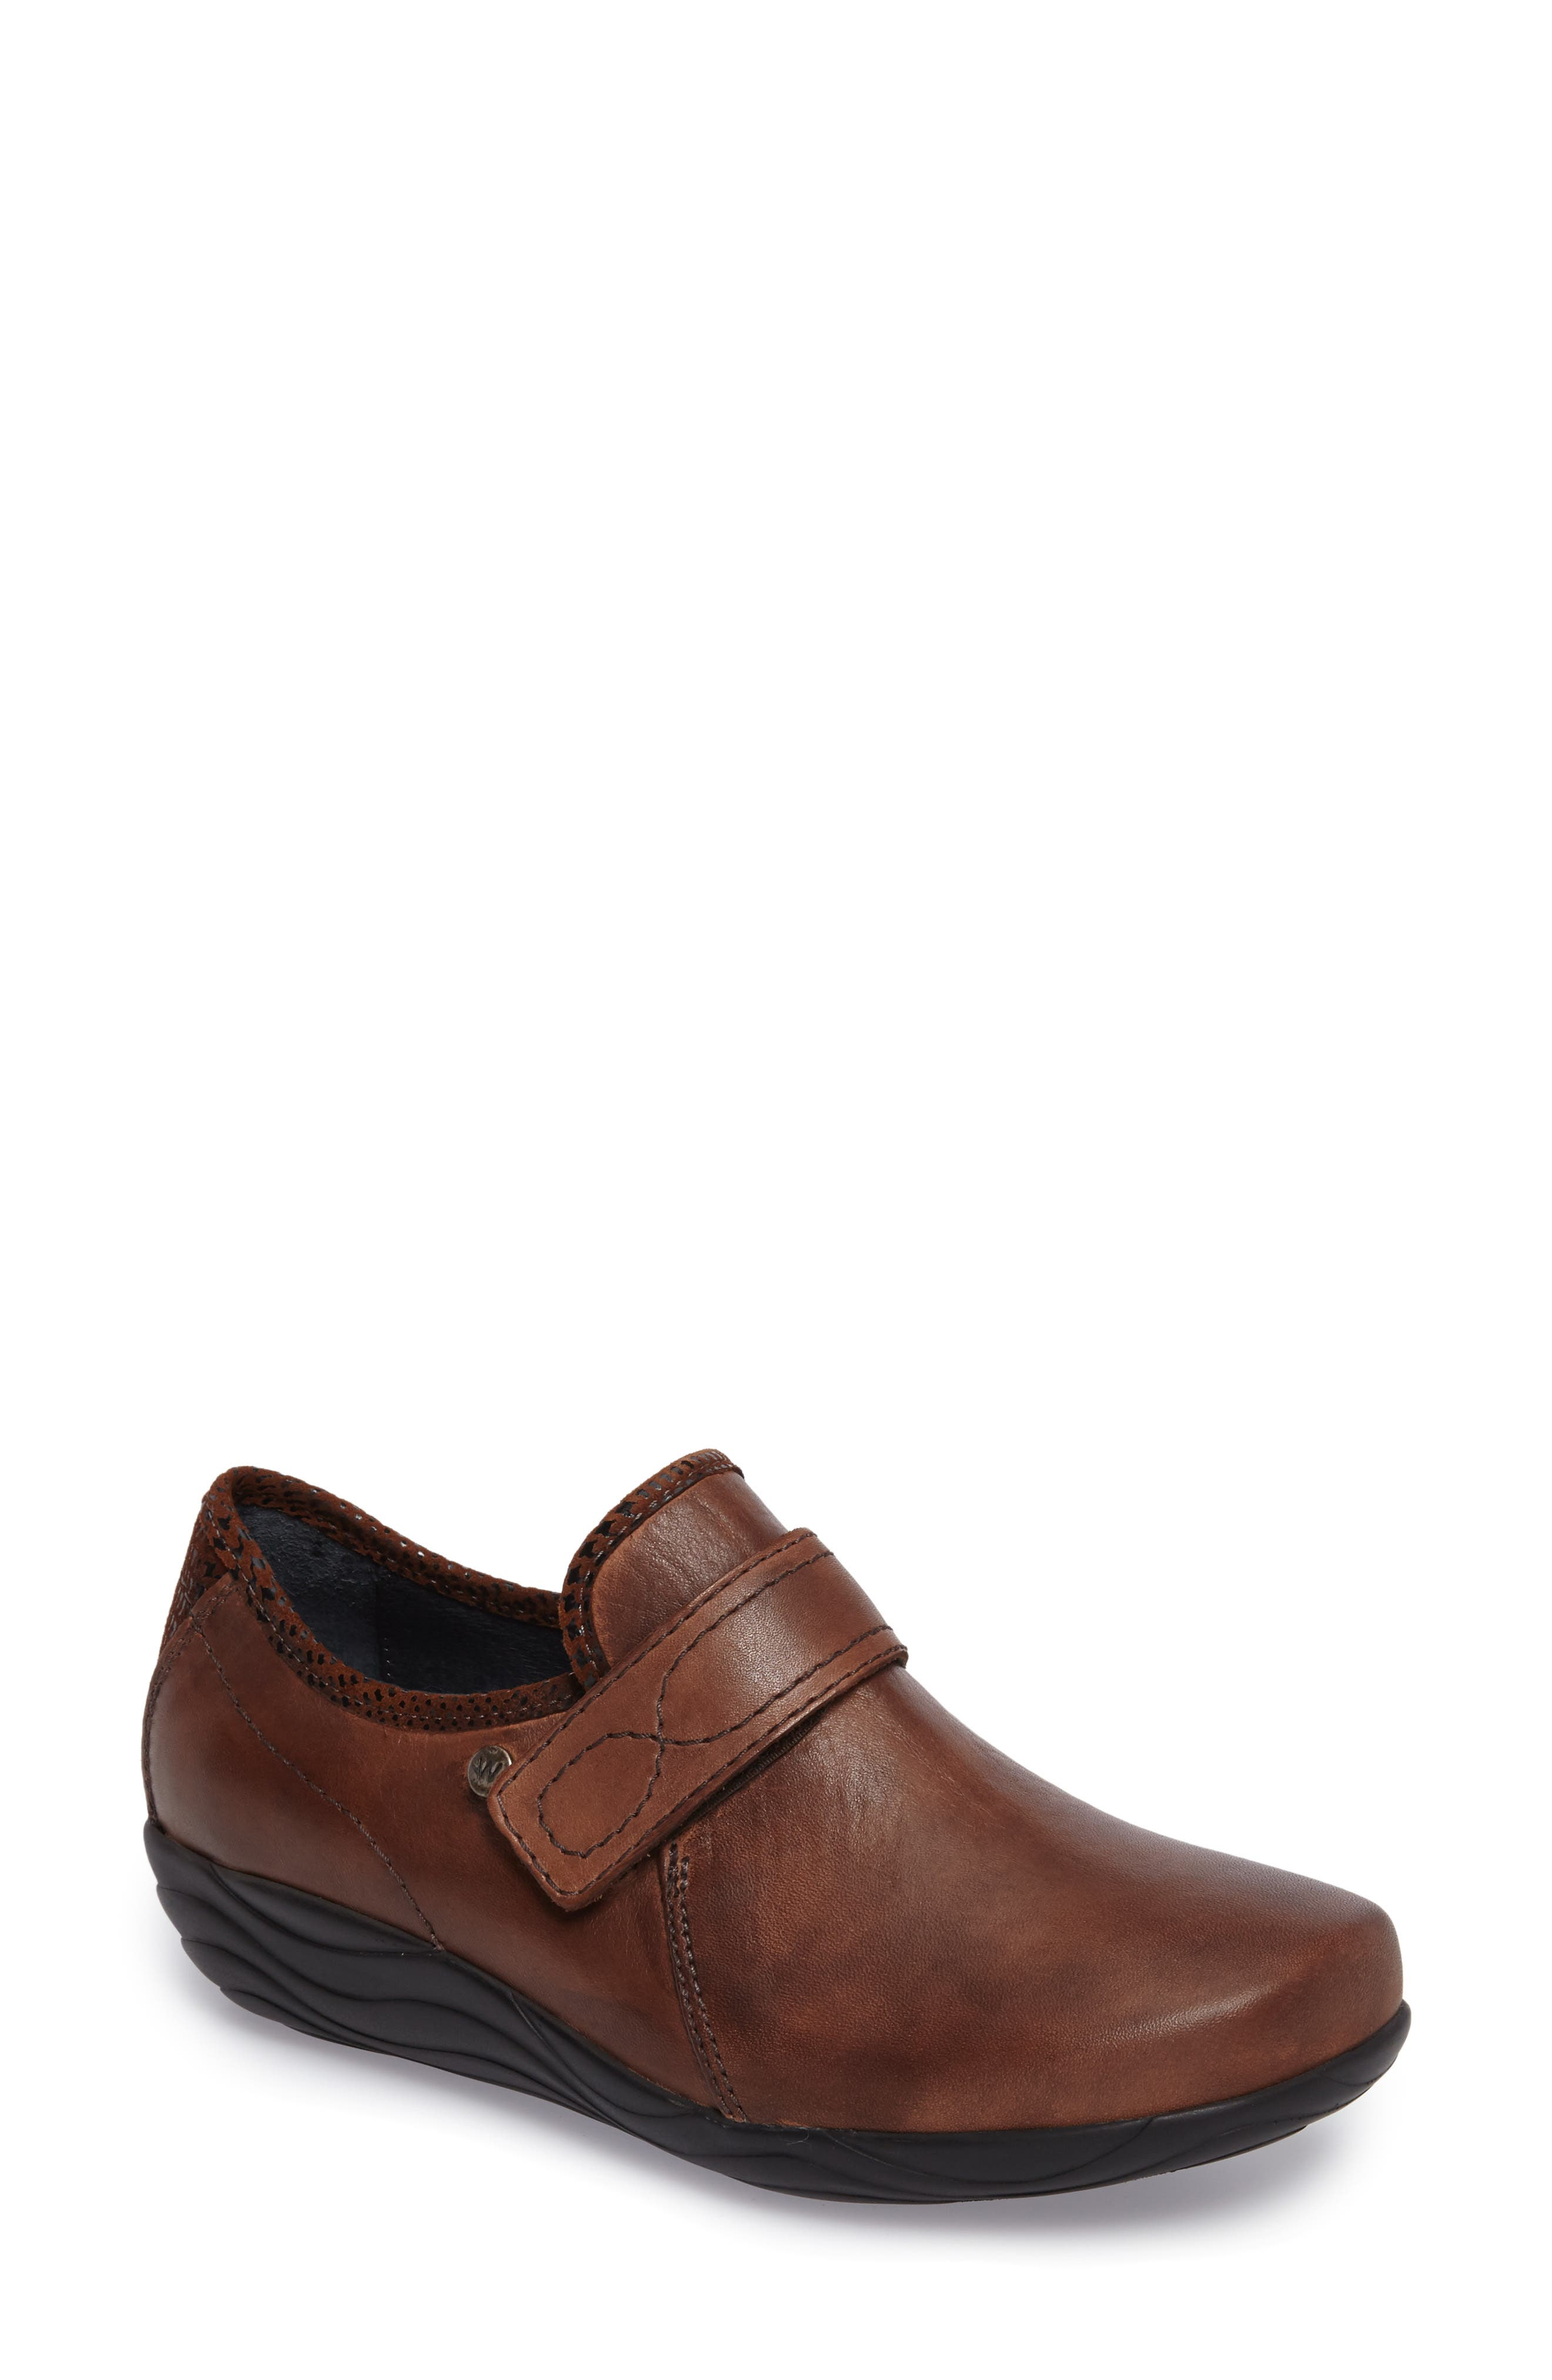 Desna Slip-On Sneaker,                         Main,                         color, Cognac Leather